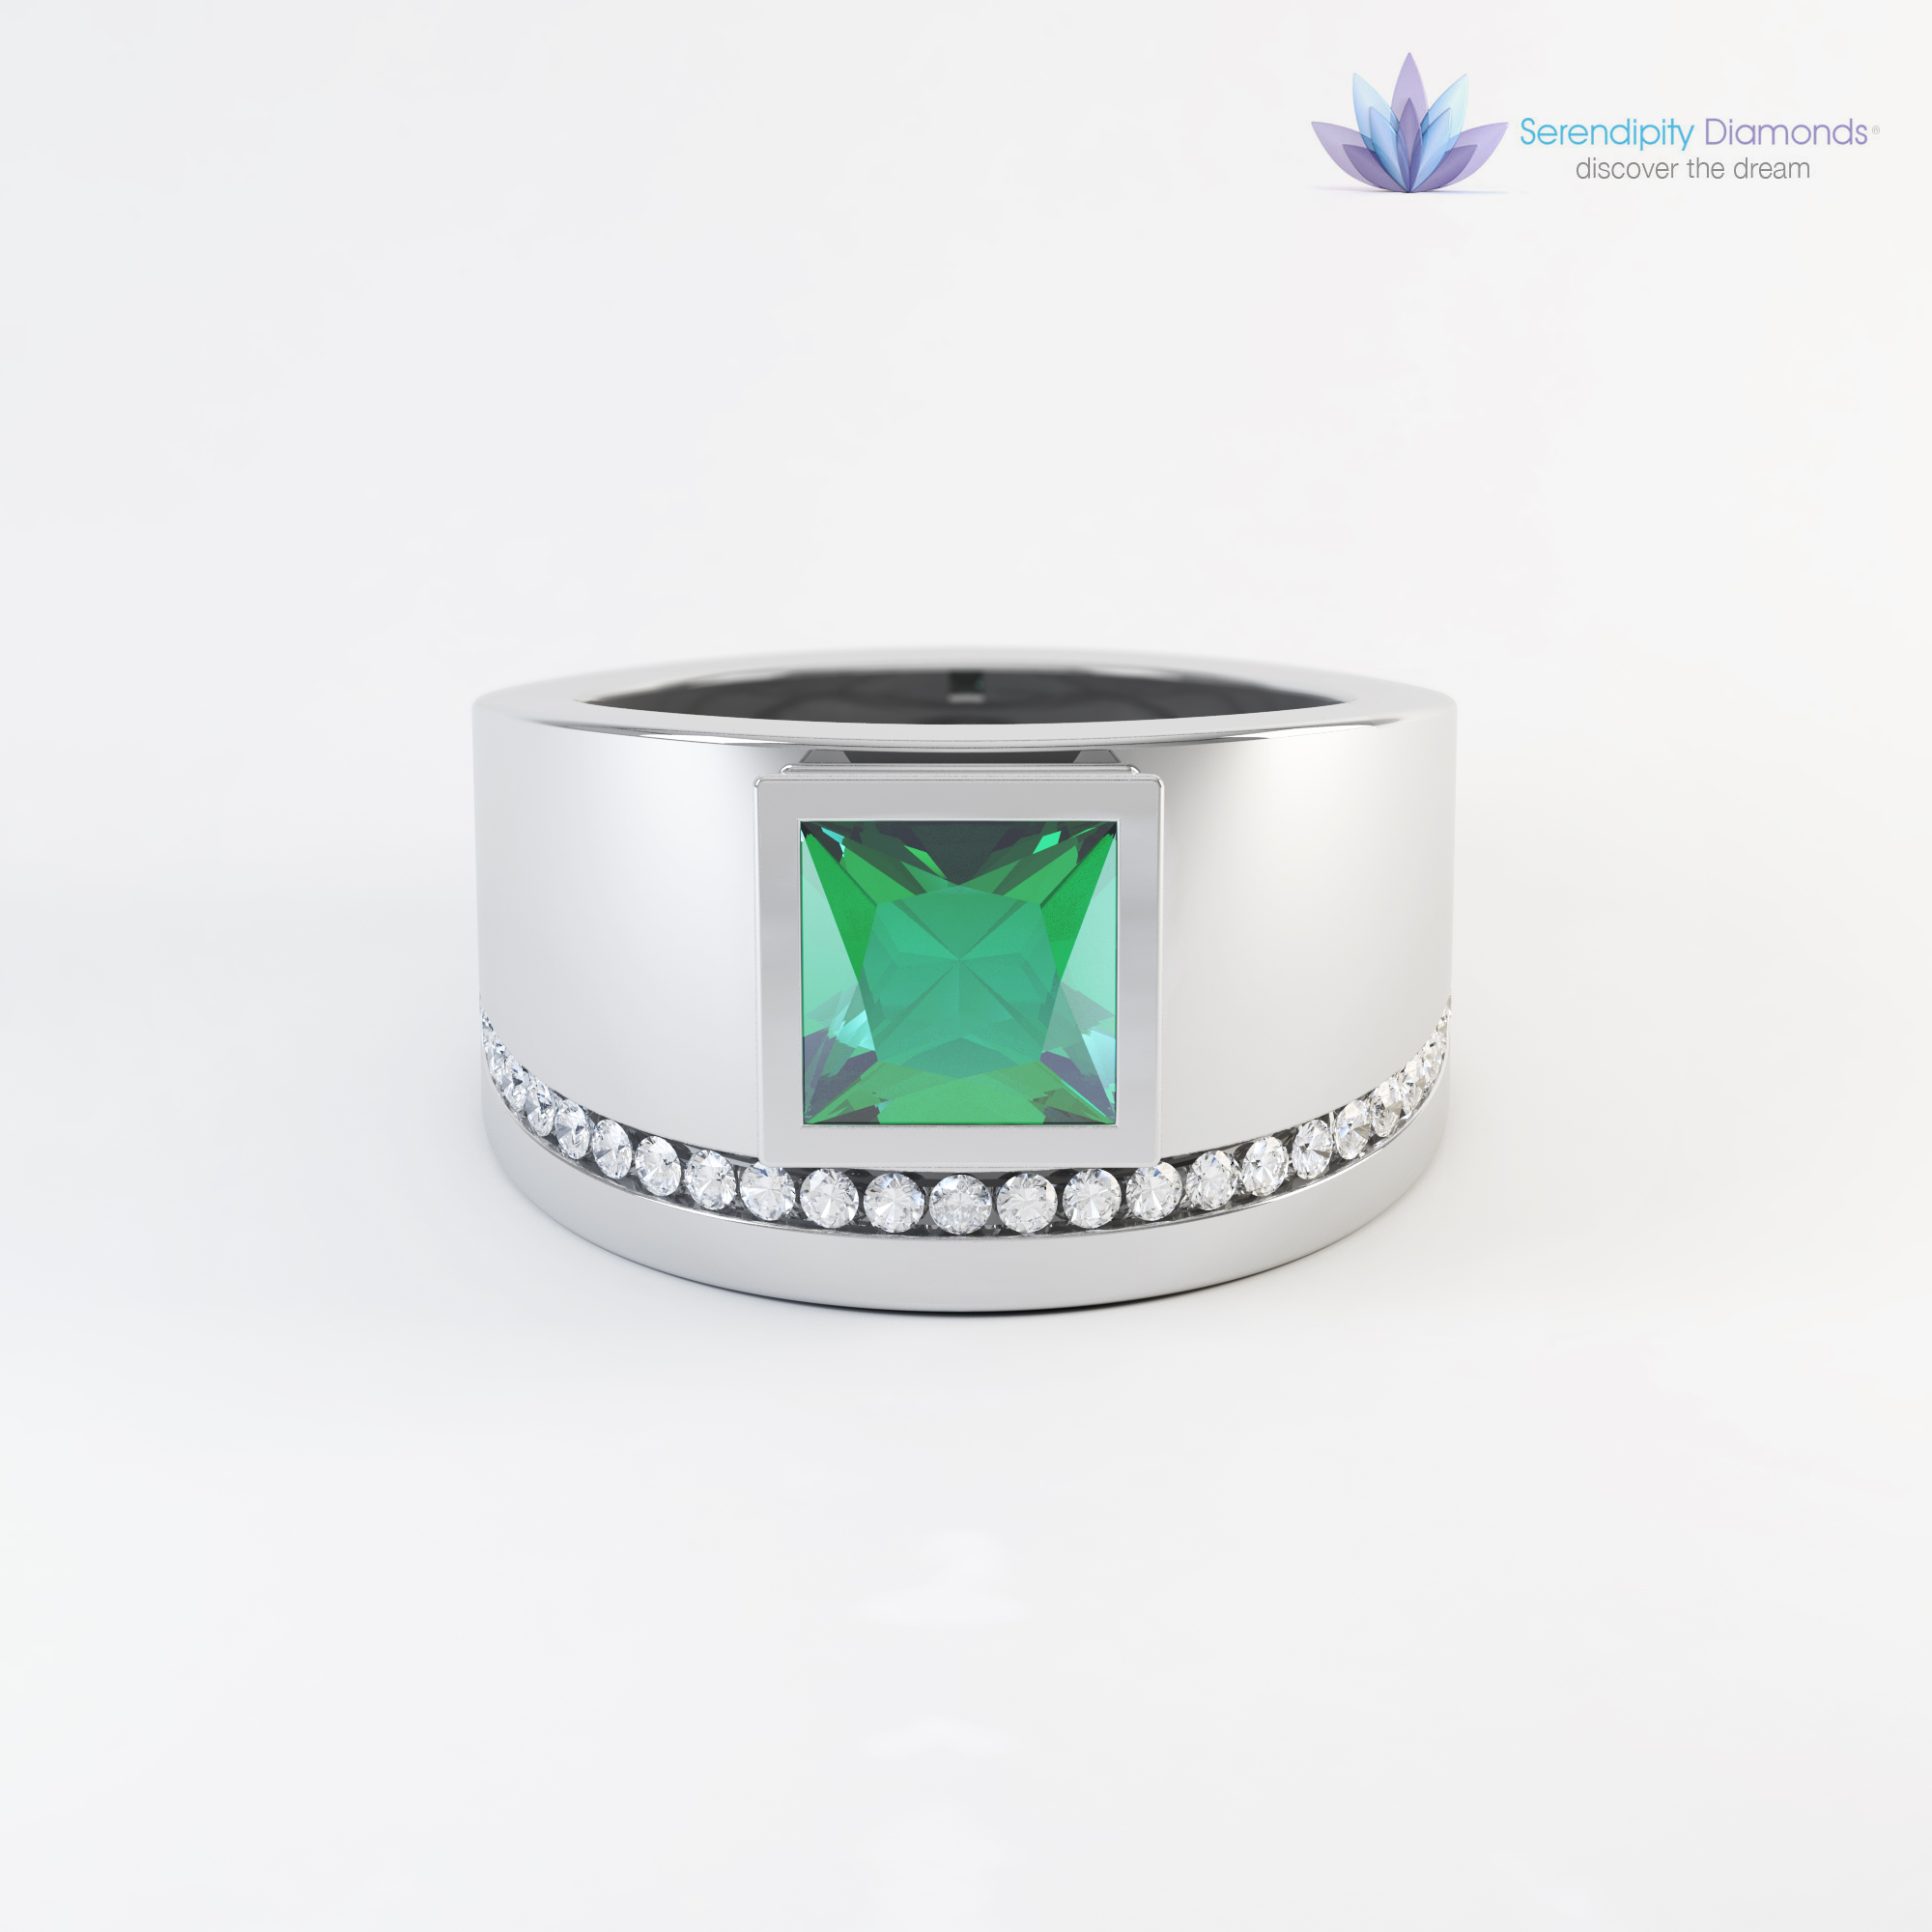 jewellery rendering from 3D CAD model